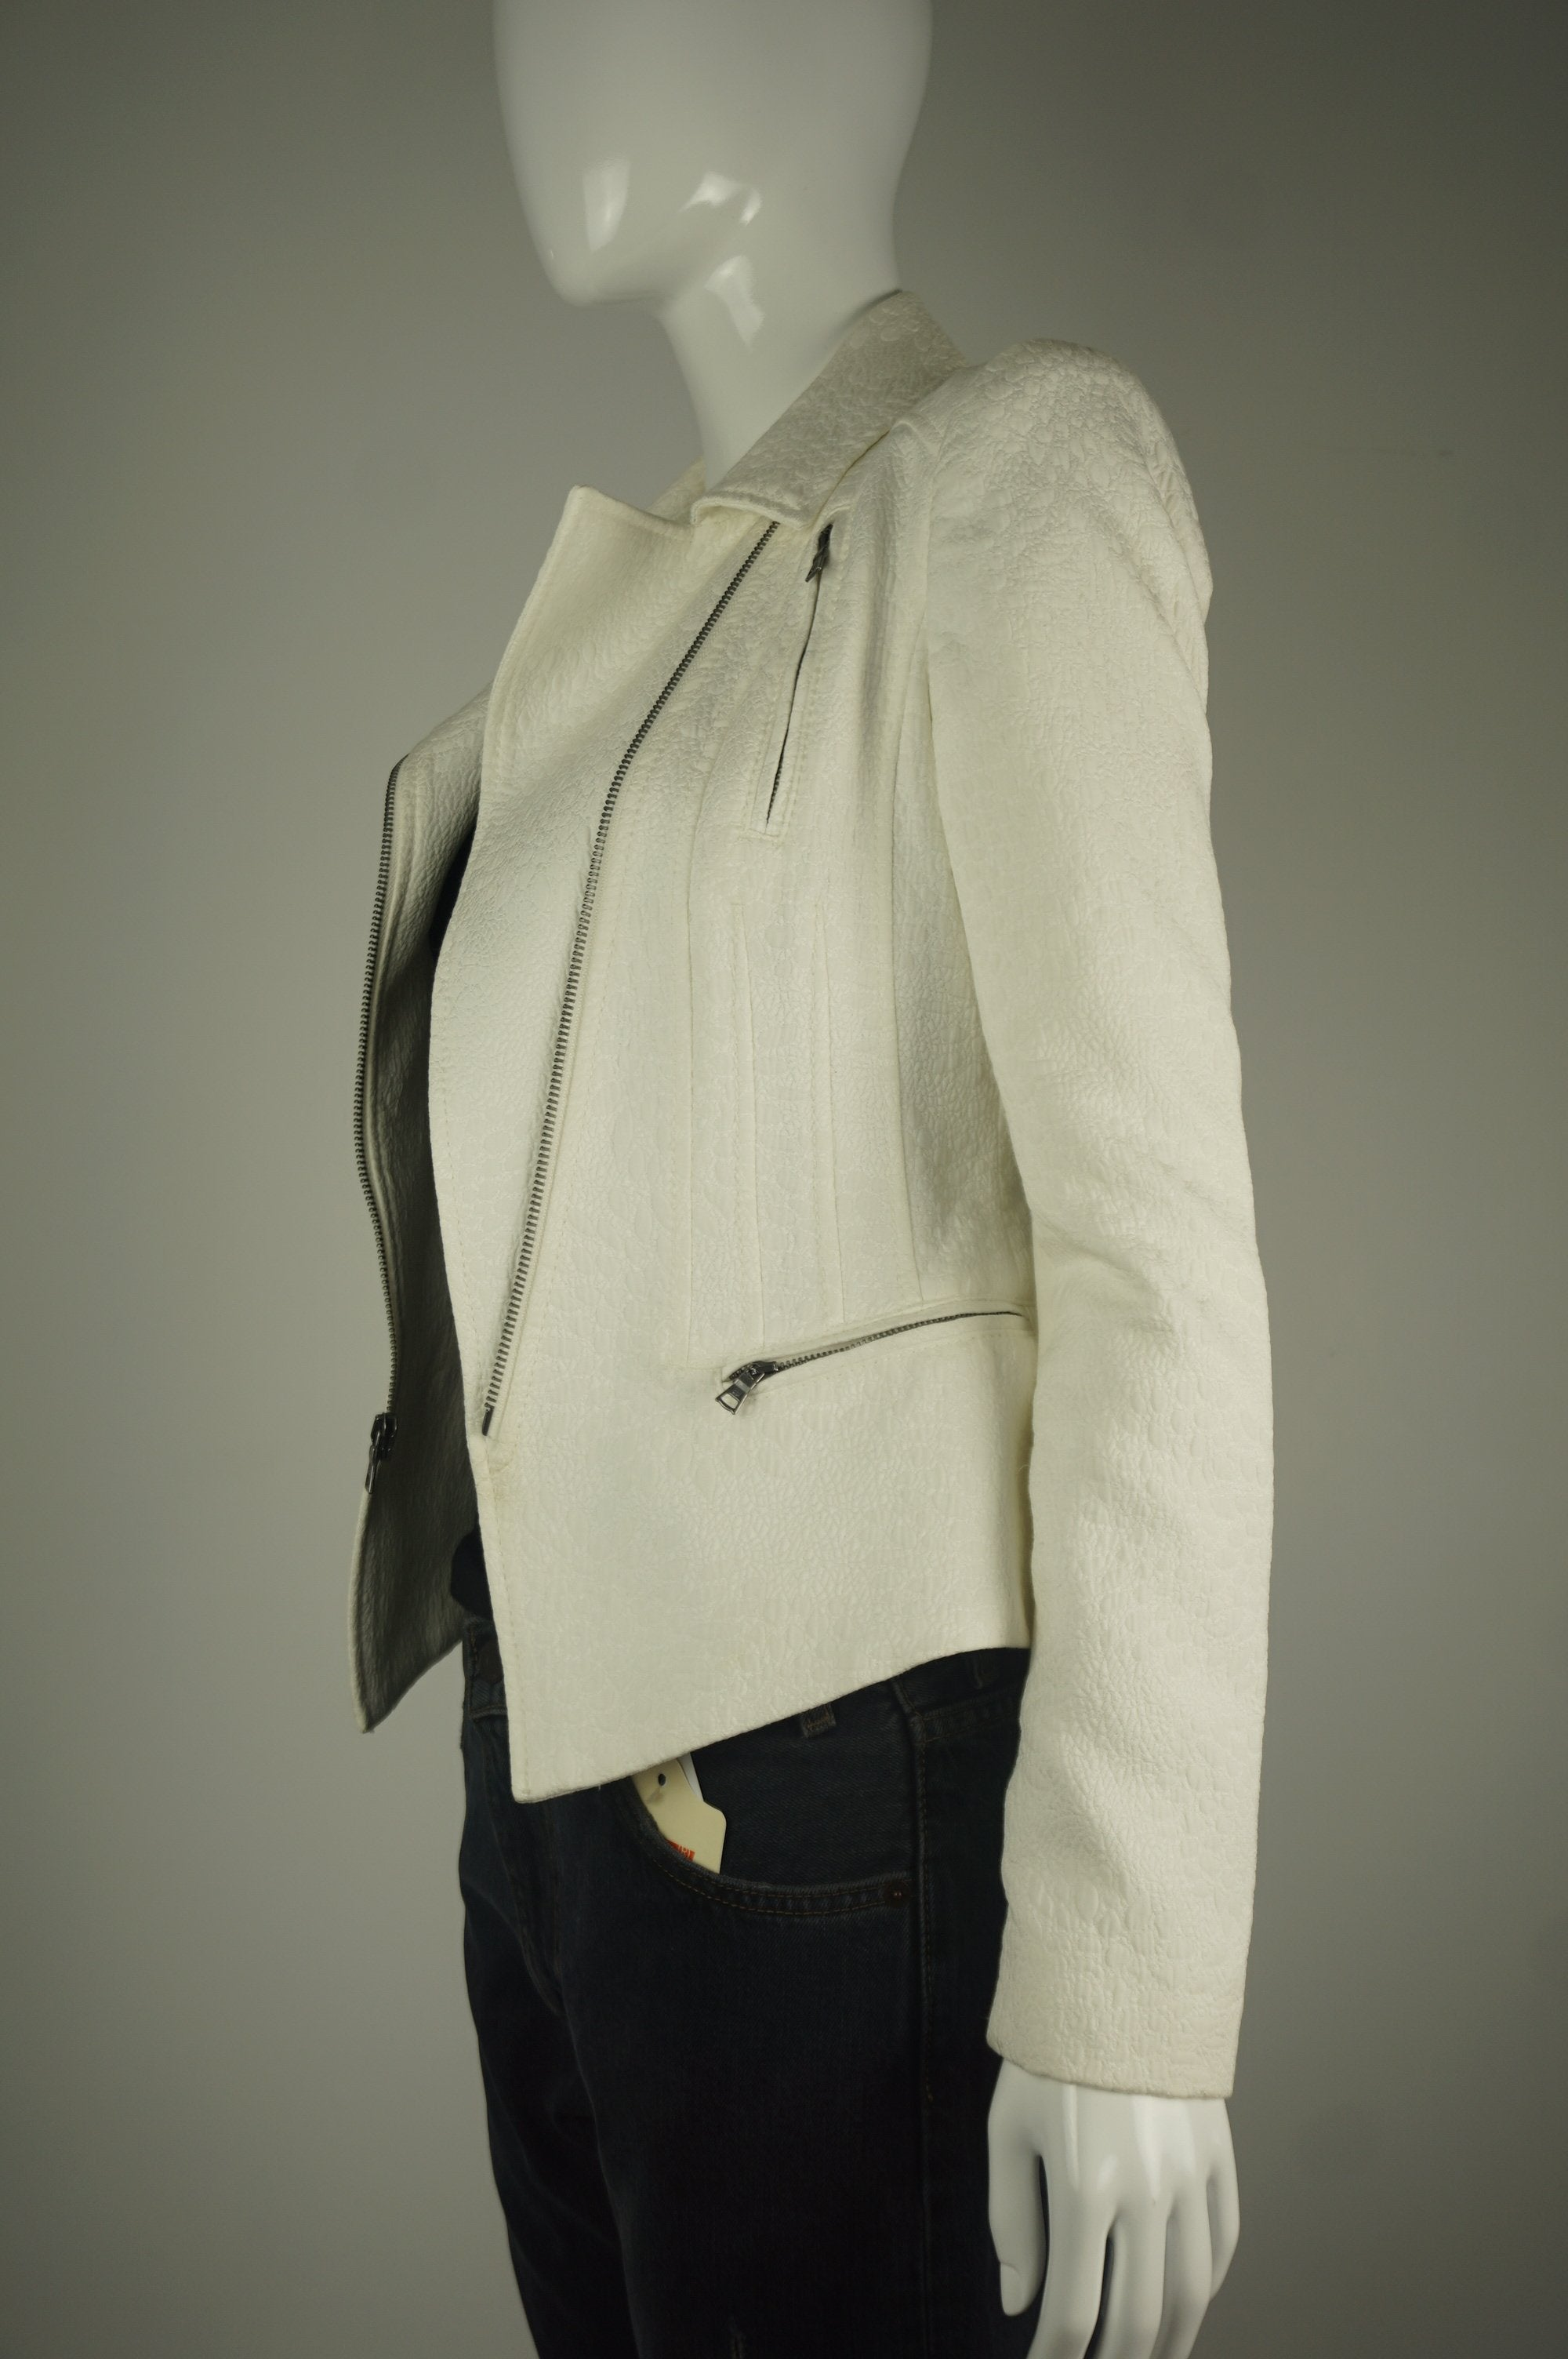 BCBG MAXAZRIA White Blazer, Super flattering chic blazer with zipped front but also looks great open. , White, Shell: 62% cotton, 28% polyester.,